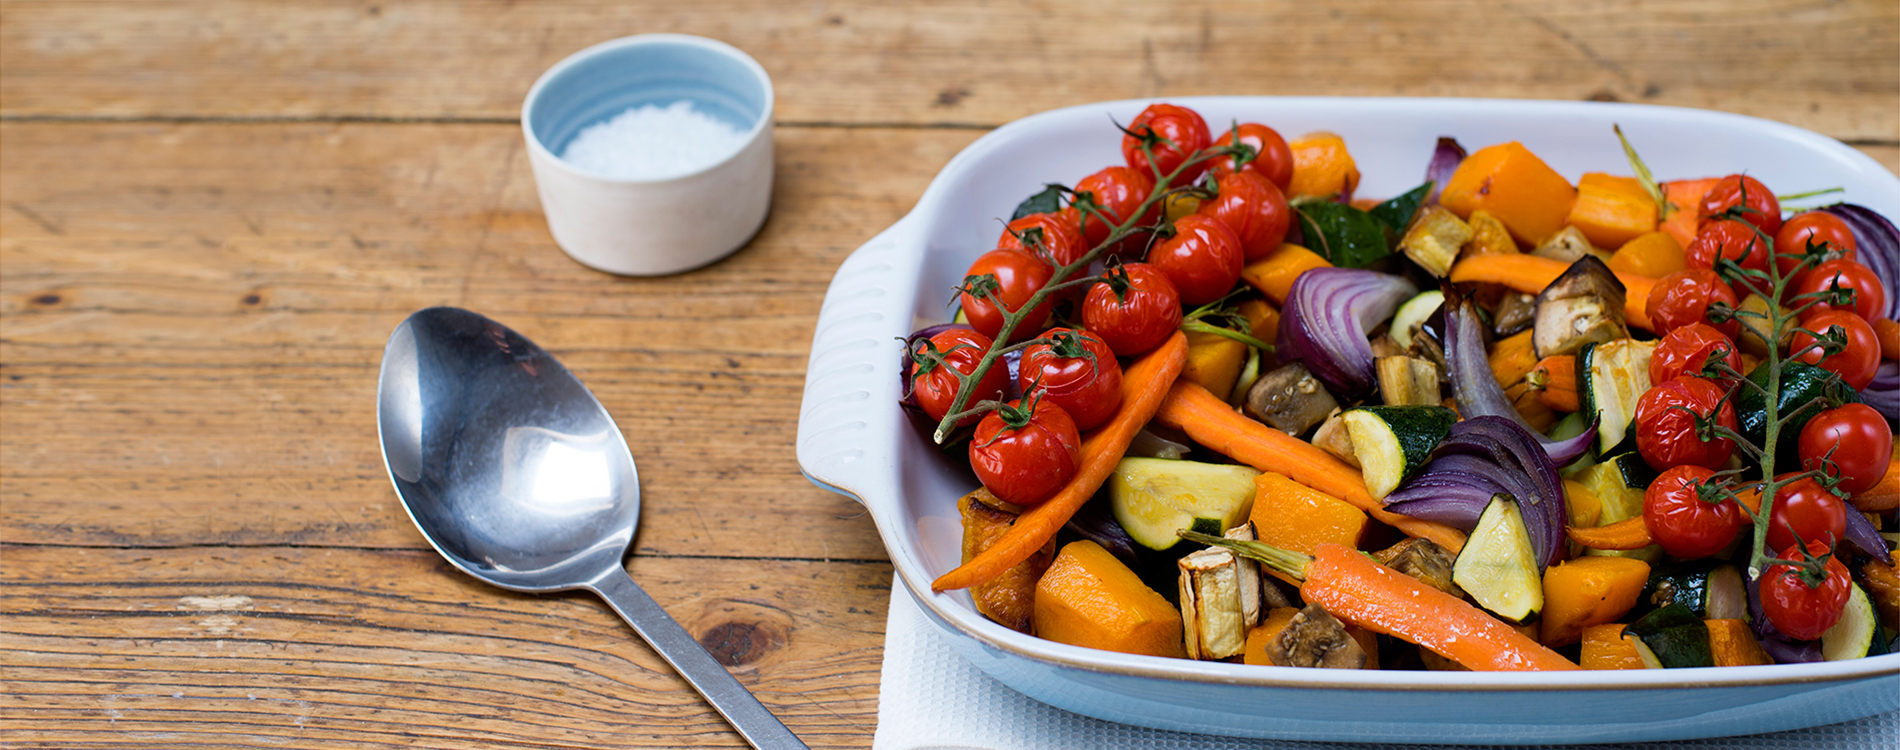 Roasted vegetables in rapeseed oil